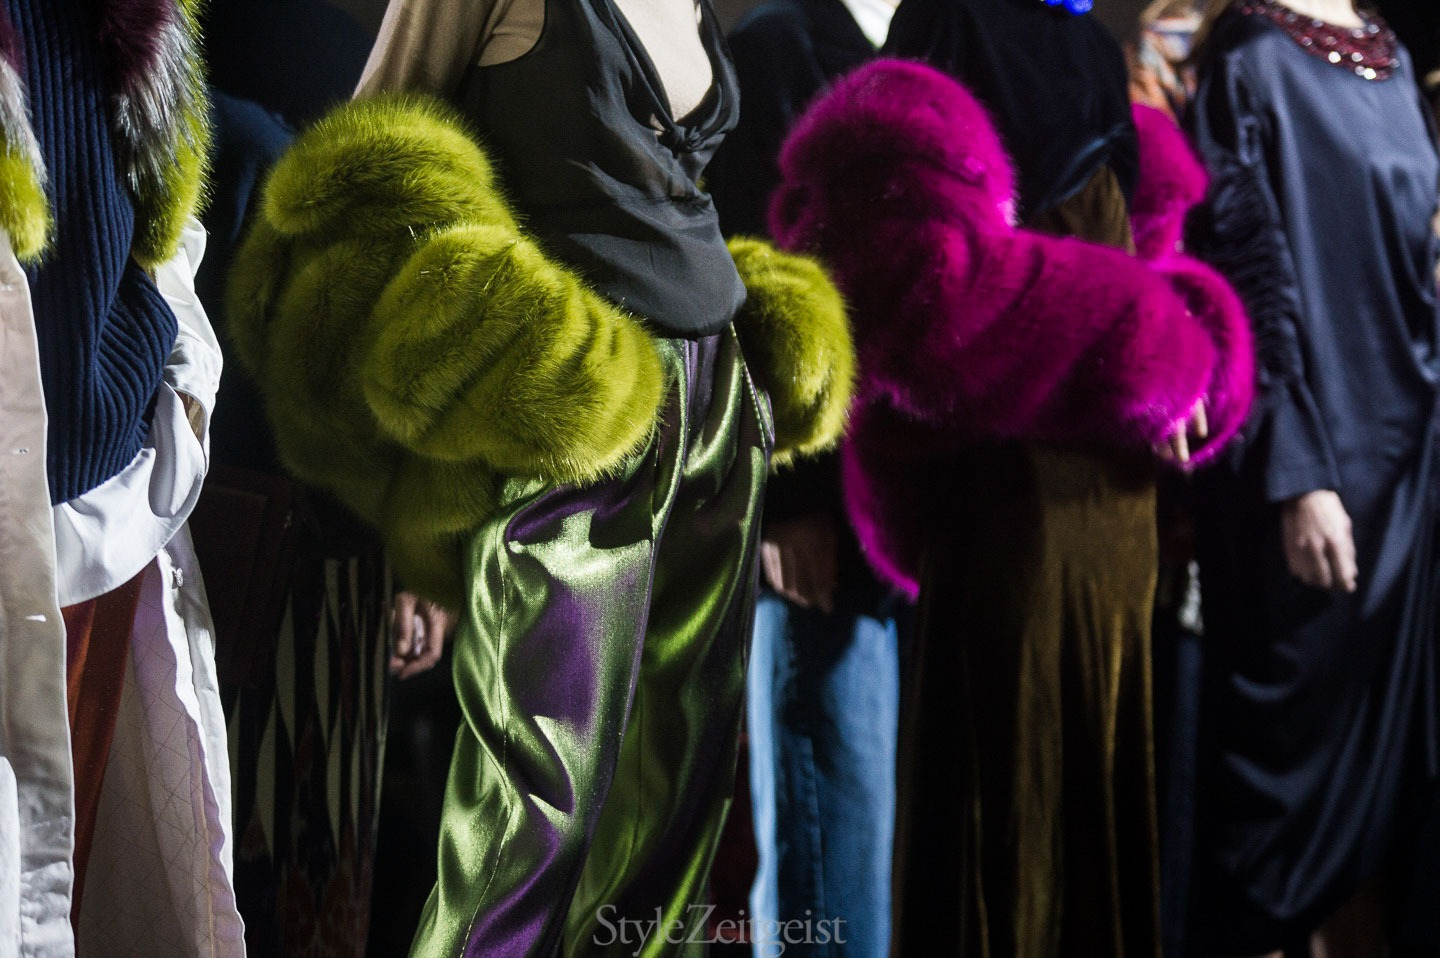 StyleZeitgeist Dries Van Noten F/W17 Women's - Paris Fashion    StyleZeitgeist Dries Van Noten F/W17 Women's - Paris Fashion    StyleZeitgeist Dries Van Noten F/W17 Women's - Paris Fashion    StyleZeitgeist Dries Van Noten F/W17 Women's - Paris Fashion    StyleZeitgeist Dries Van Noten F/W17 Women's - Paris Fashion    StyleZeitgeist Dries Van Noten F/W17 Women's - Paris Fashion    StyleZeitgeist Dries Van Noten F/W17 Women's - Paris Fashion    StyleZeitgeist Dries Van Noten F/W17 Women's - Paris Fashion    StyleZeitgeist Dries Van Noten F/W17 Women's - Paris Fashion    StyleZeitgeist Dries Van Noten F/W17 Women's - Paris Fashion    StyleZeitgeist Dries Van Noten F/W17 Women's - Paris Fashion    StyleZeitgeist Dries Van Noten F/W17 Women's - Paris Fashion    StyleZeitgeist Dries Van Noten F/W17 Women's - Paris Fashion